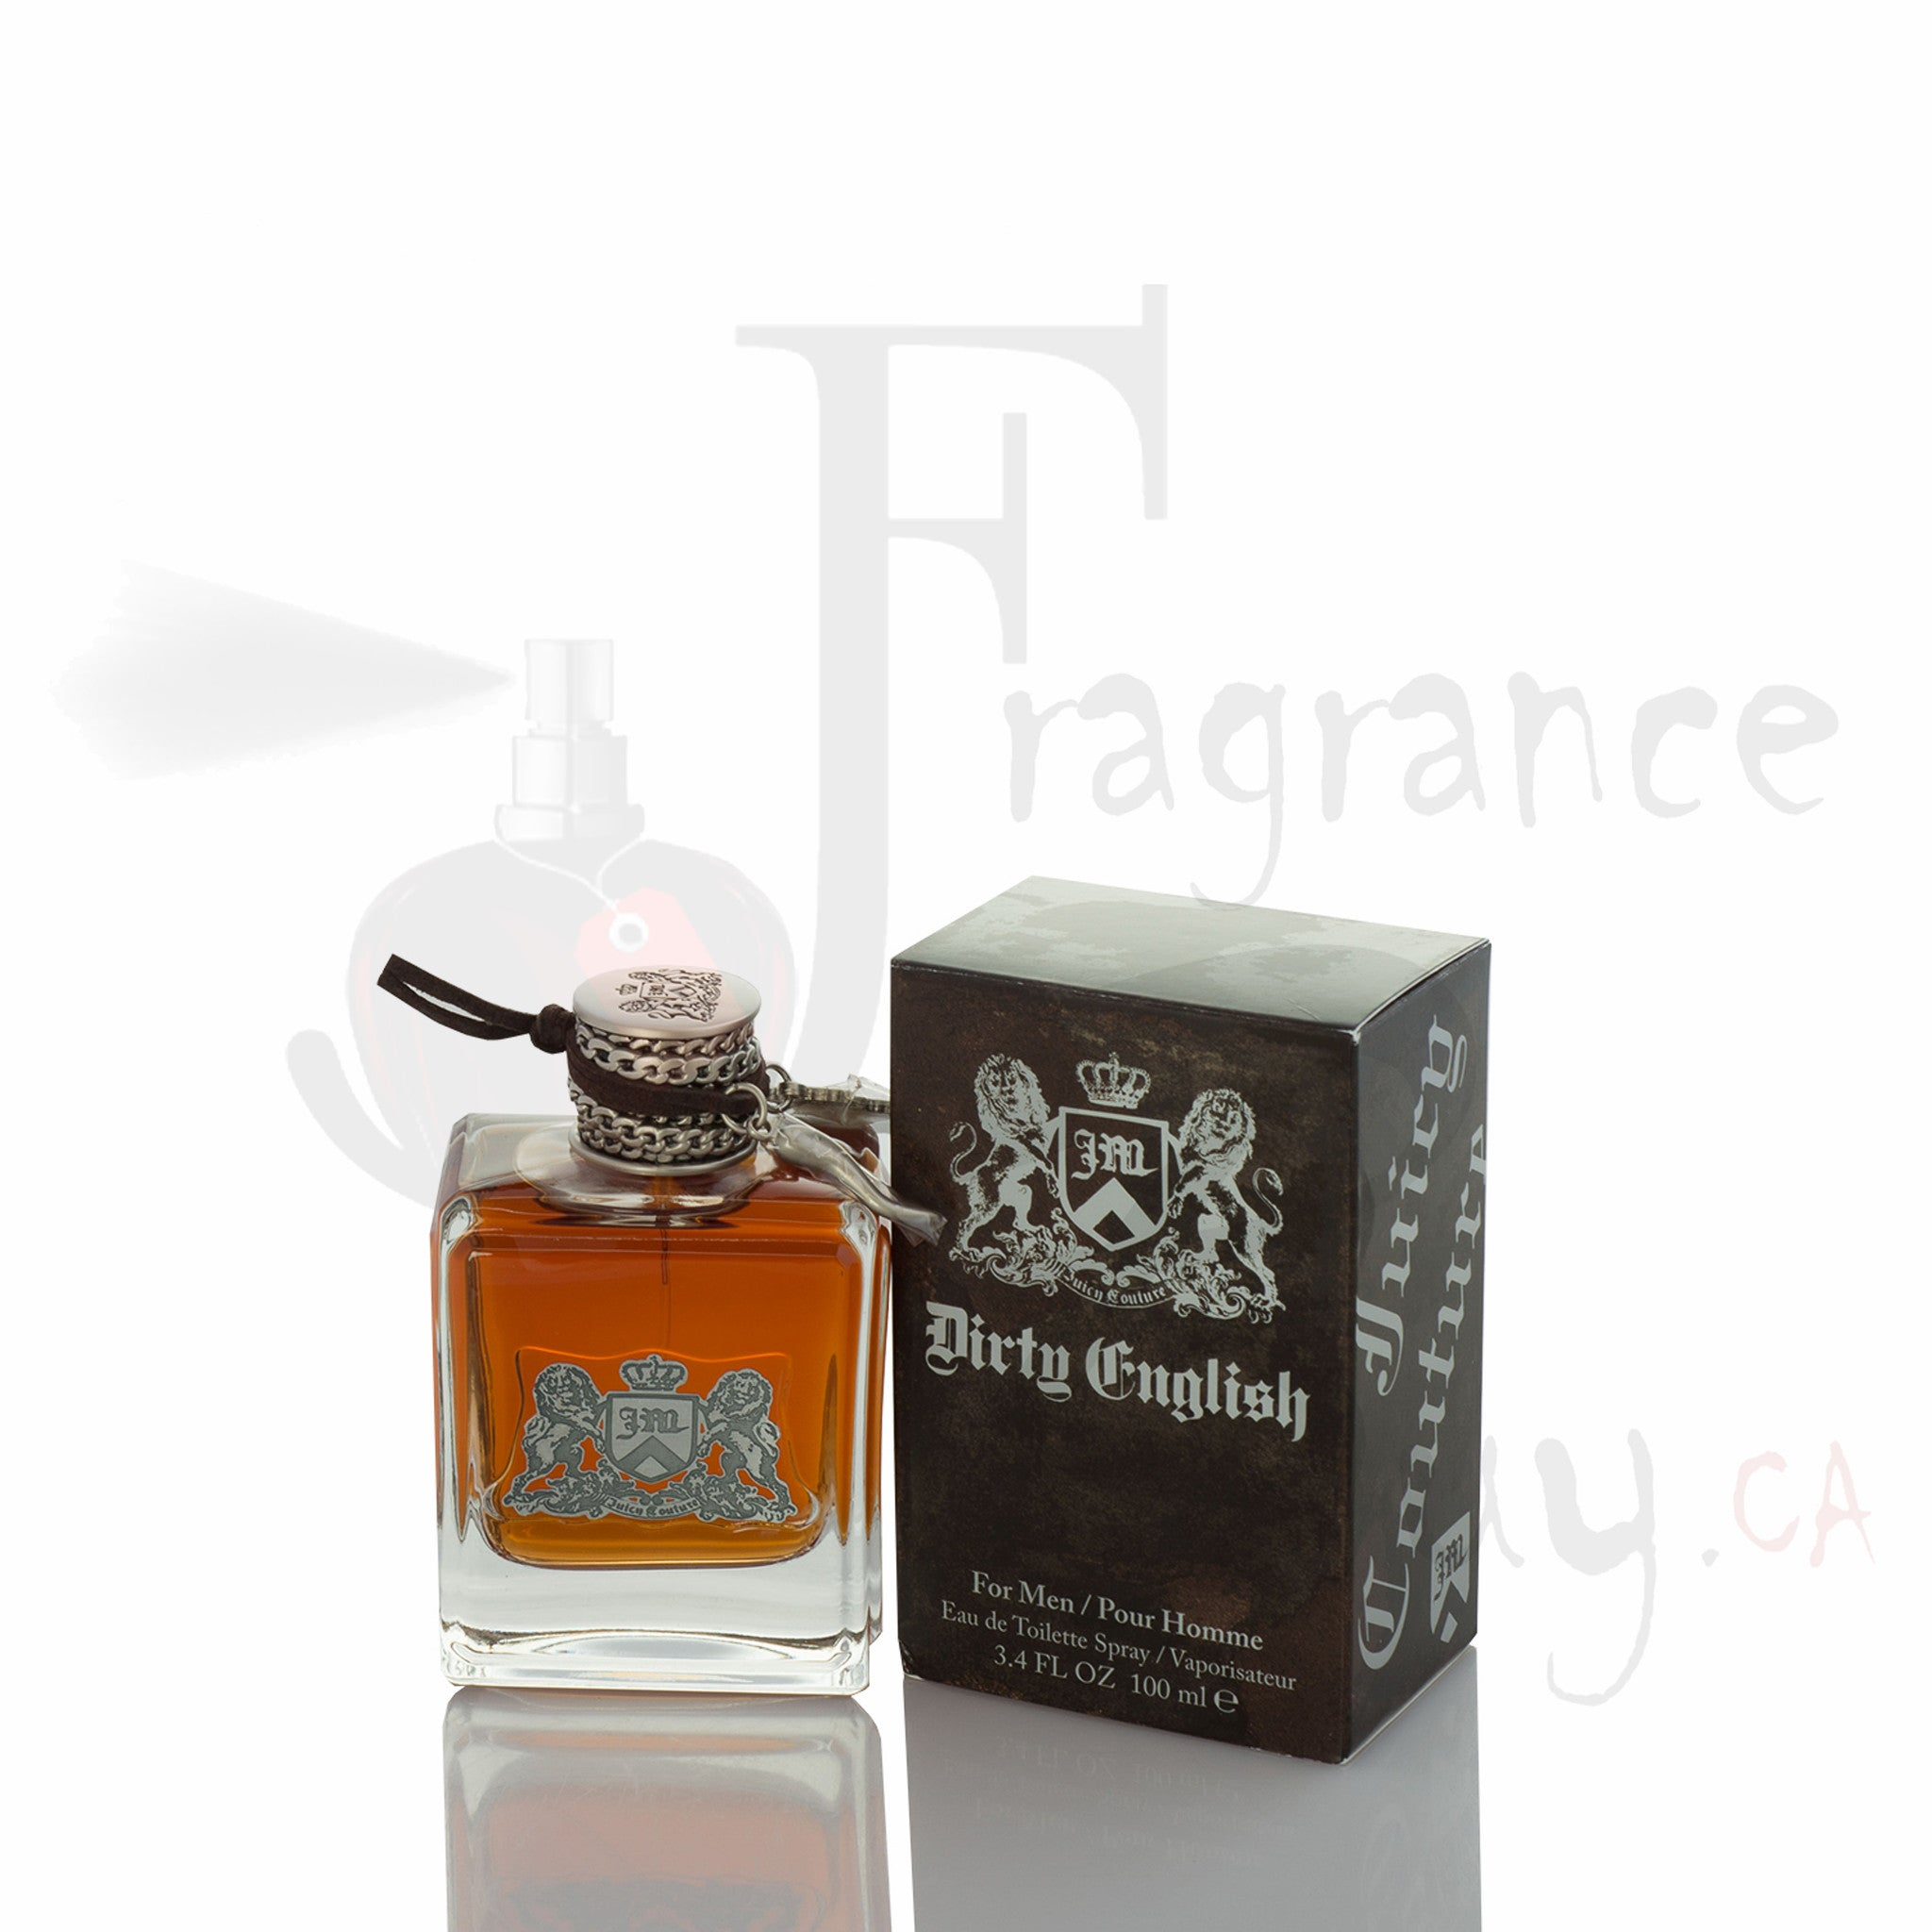 Juicy Couture Dirty English For Man